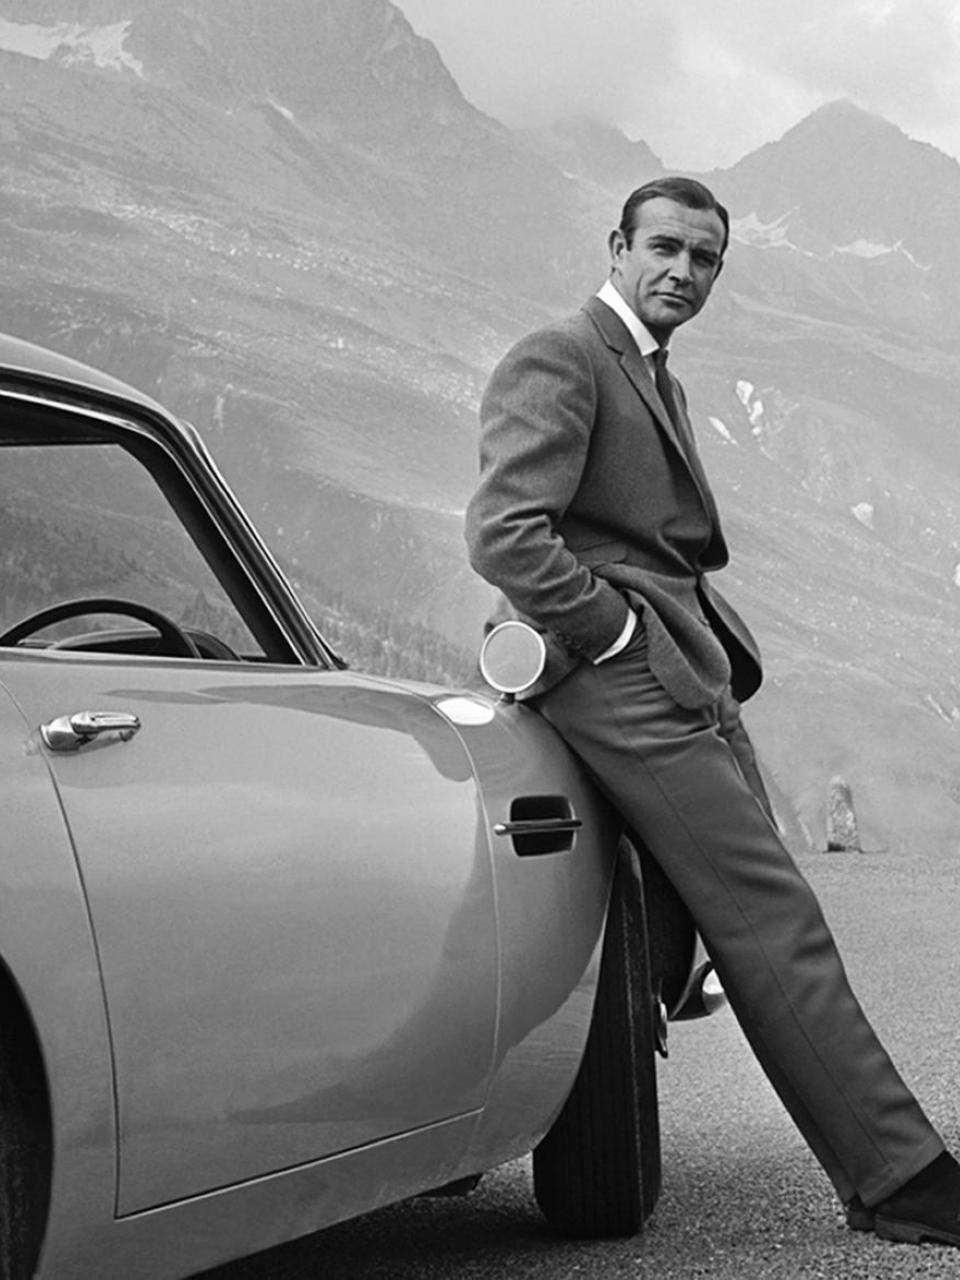 James Bond aka 007 on his quest to hunt down Goldfinger in his Aston Martin DB5 in Switzerland.